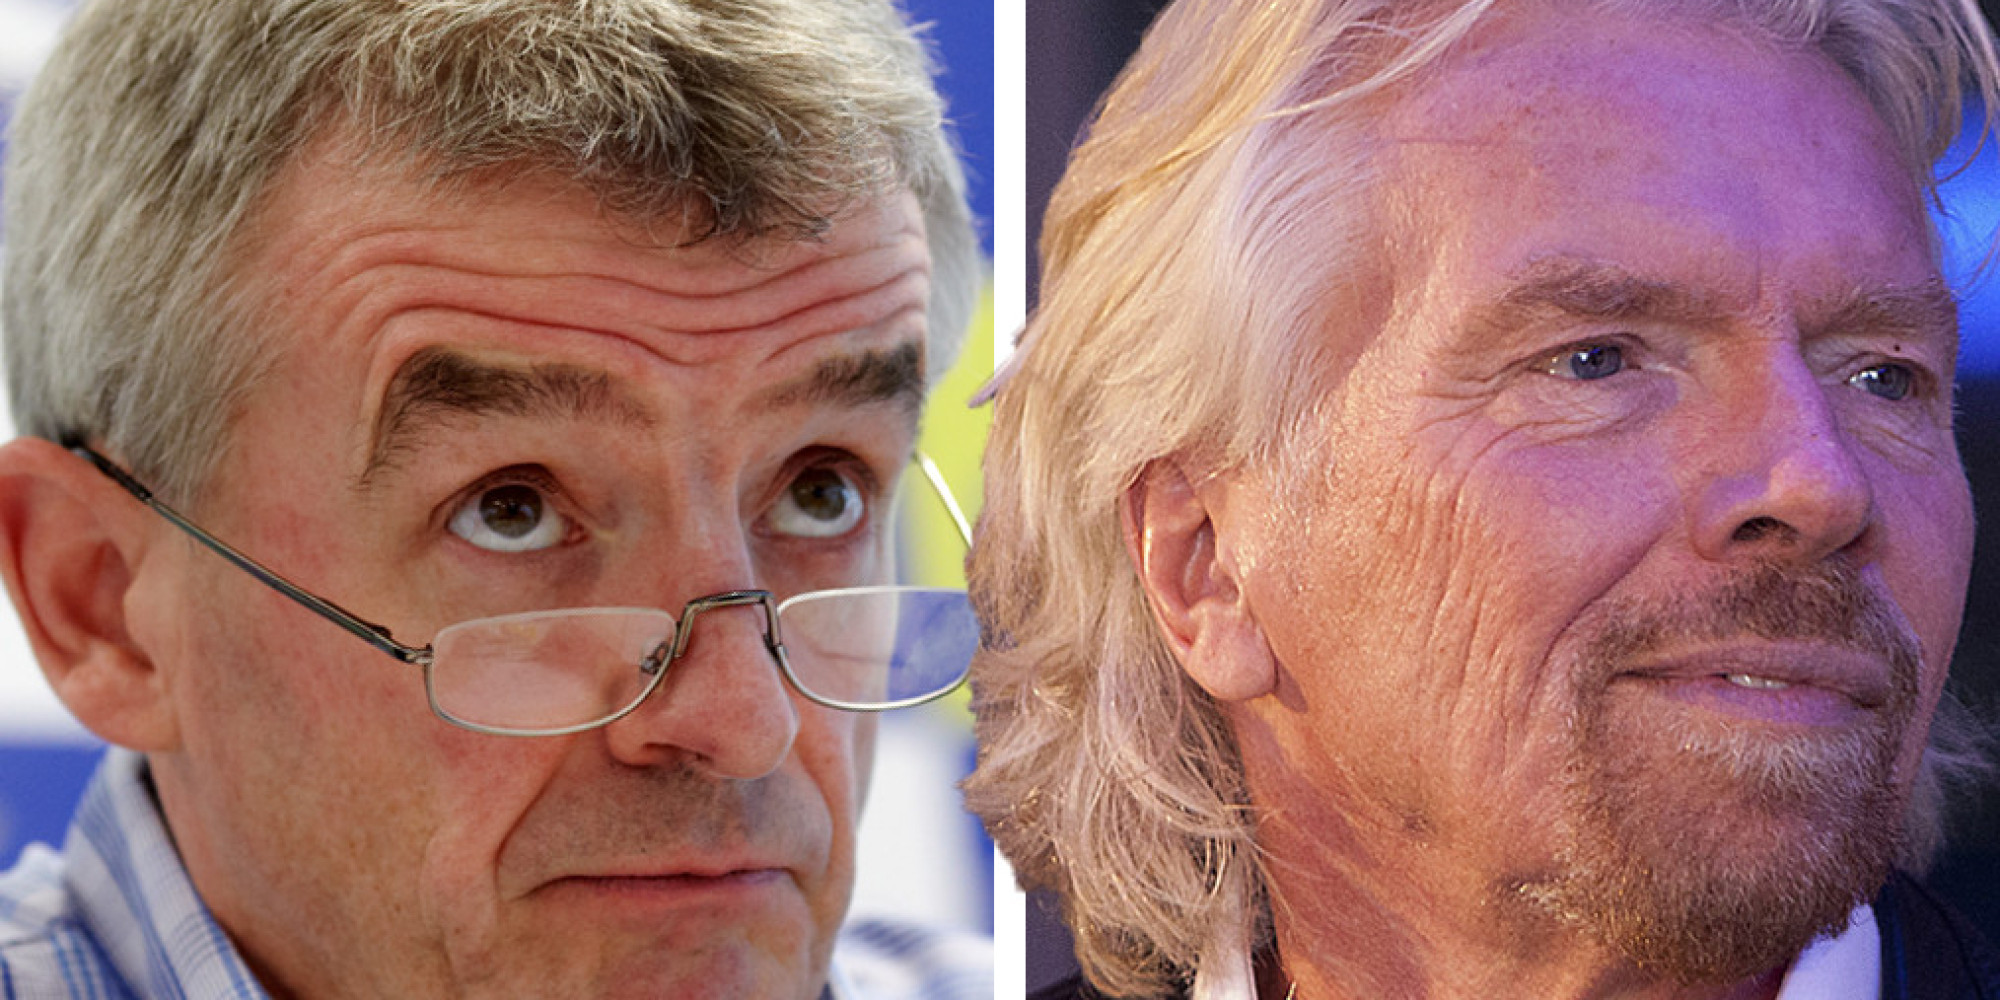 Michael O'Leary Suggests Richard Branson Has 'Some Kind Of